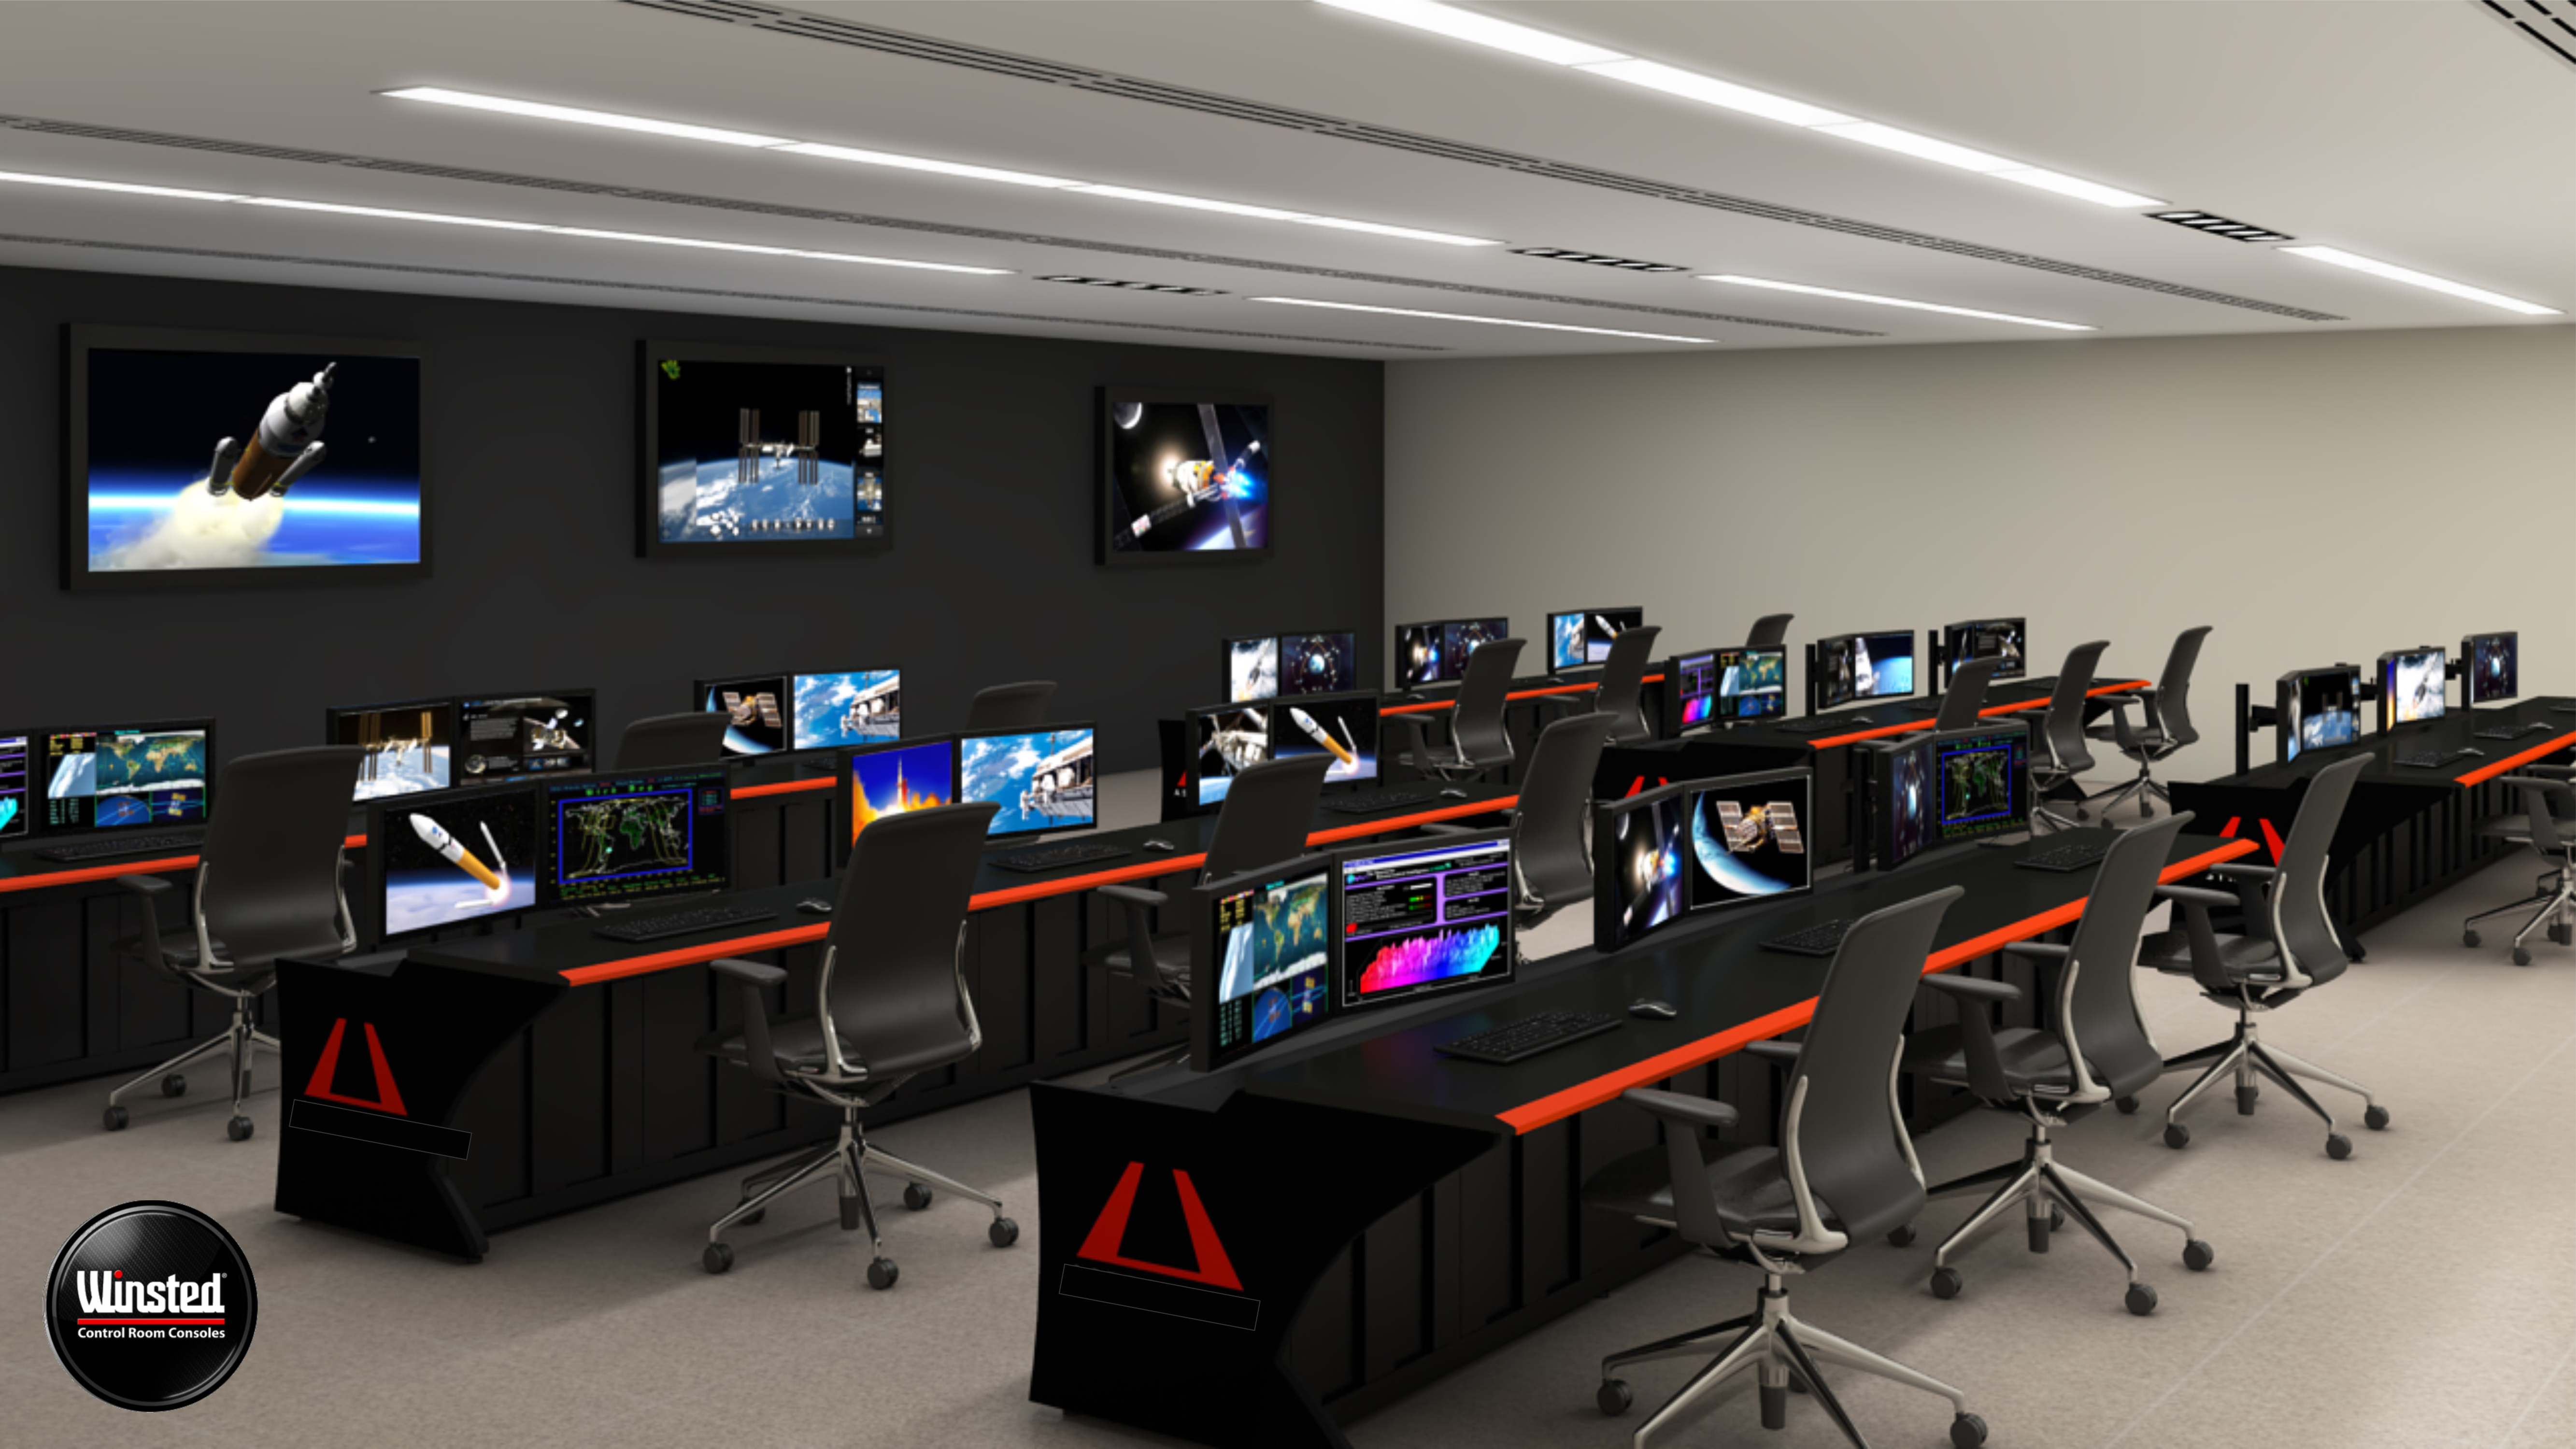 Winsted mission control room - custom end panels